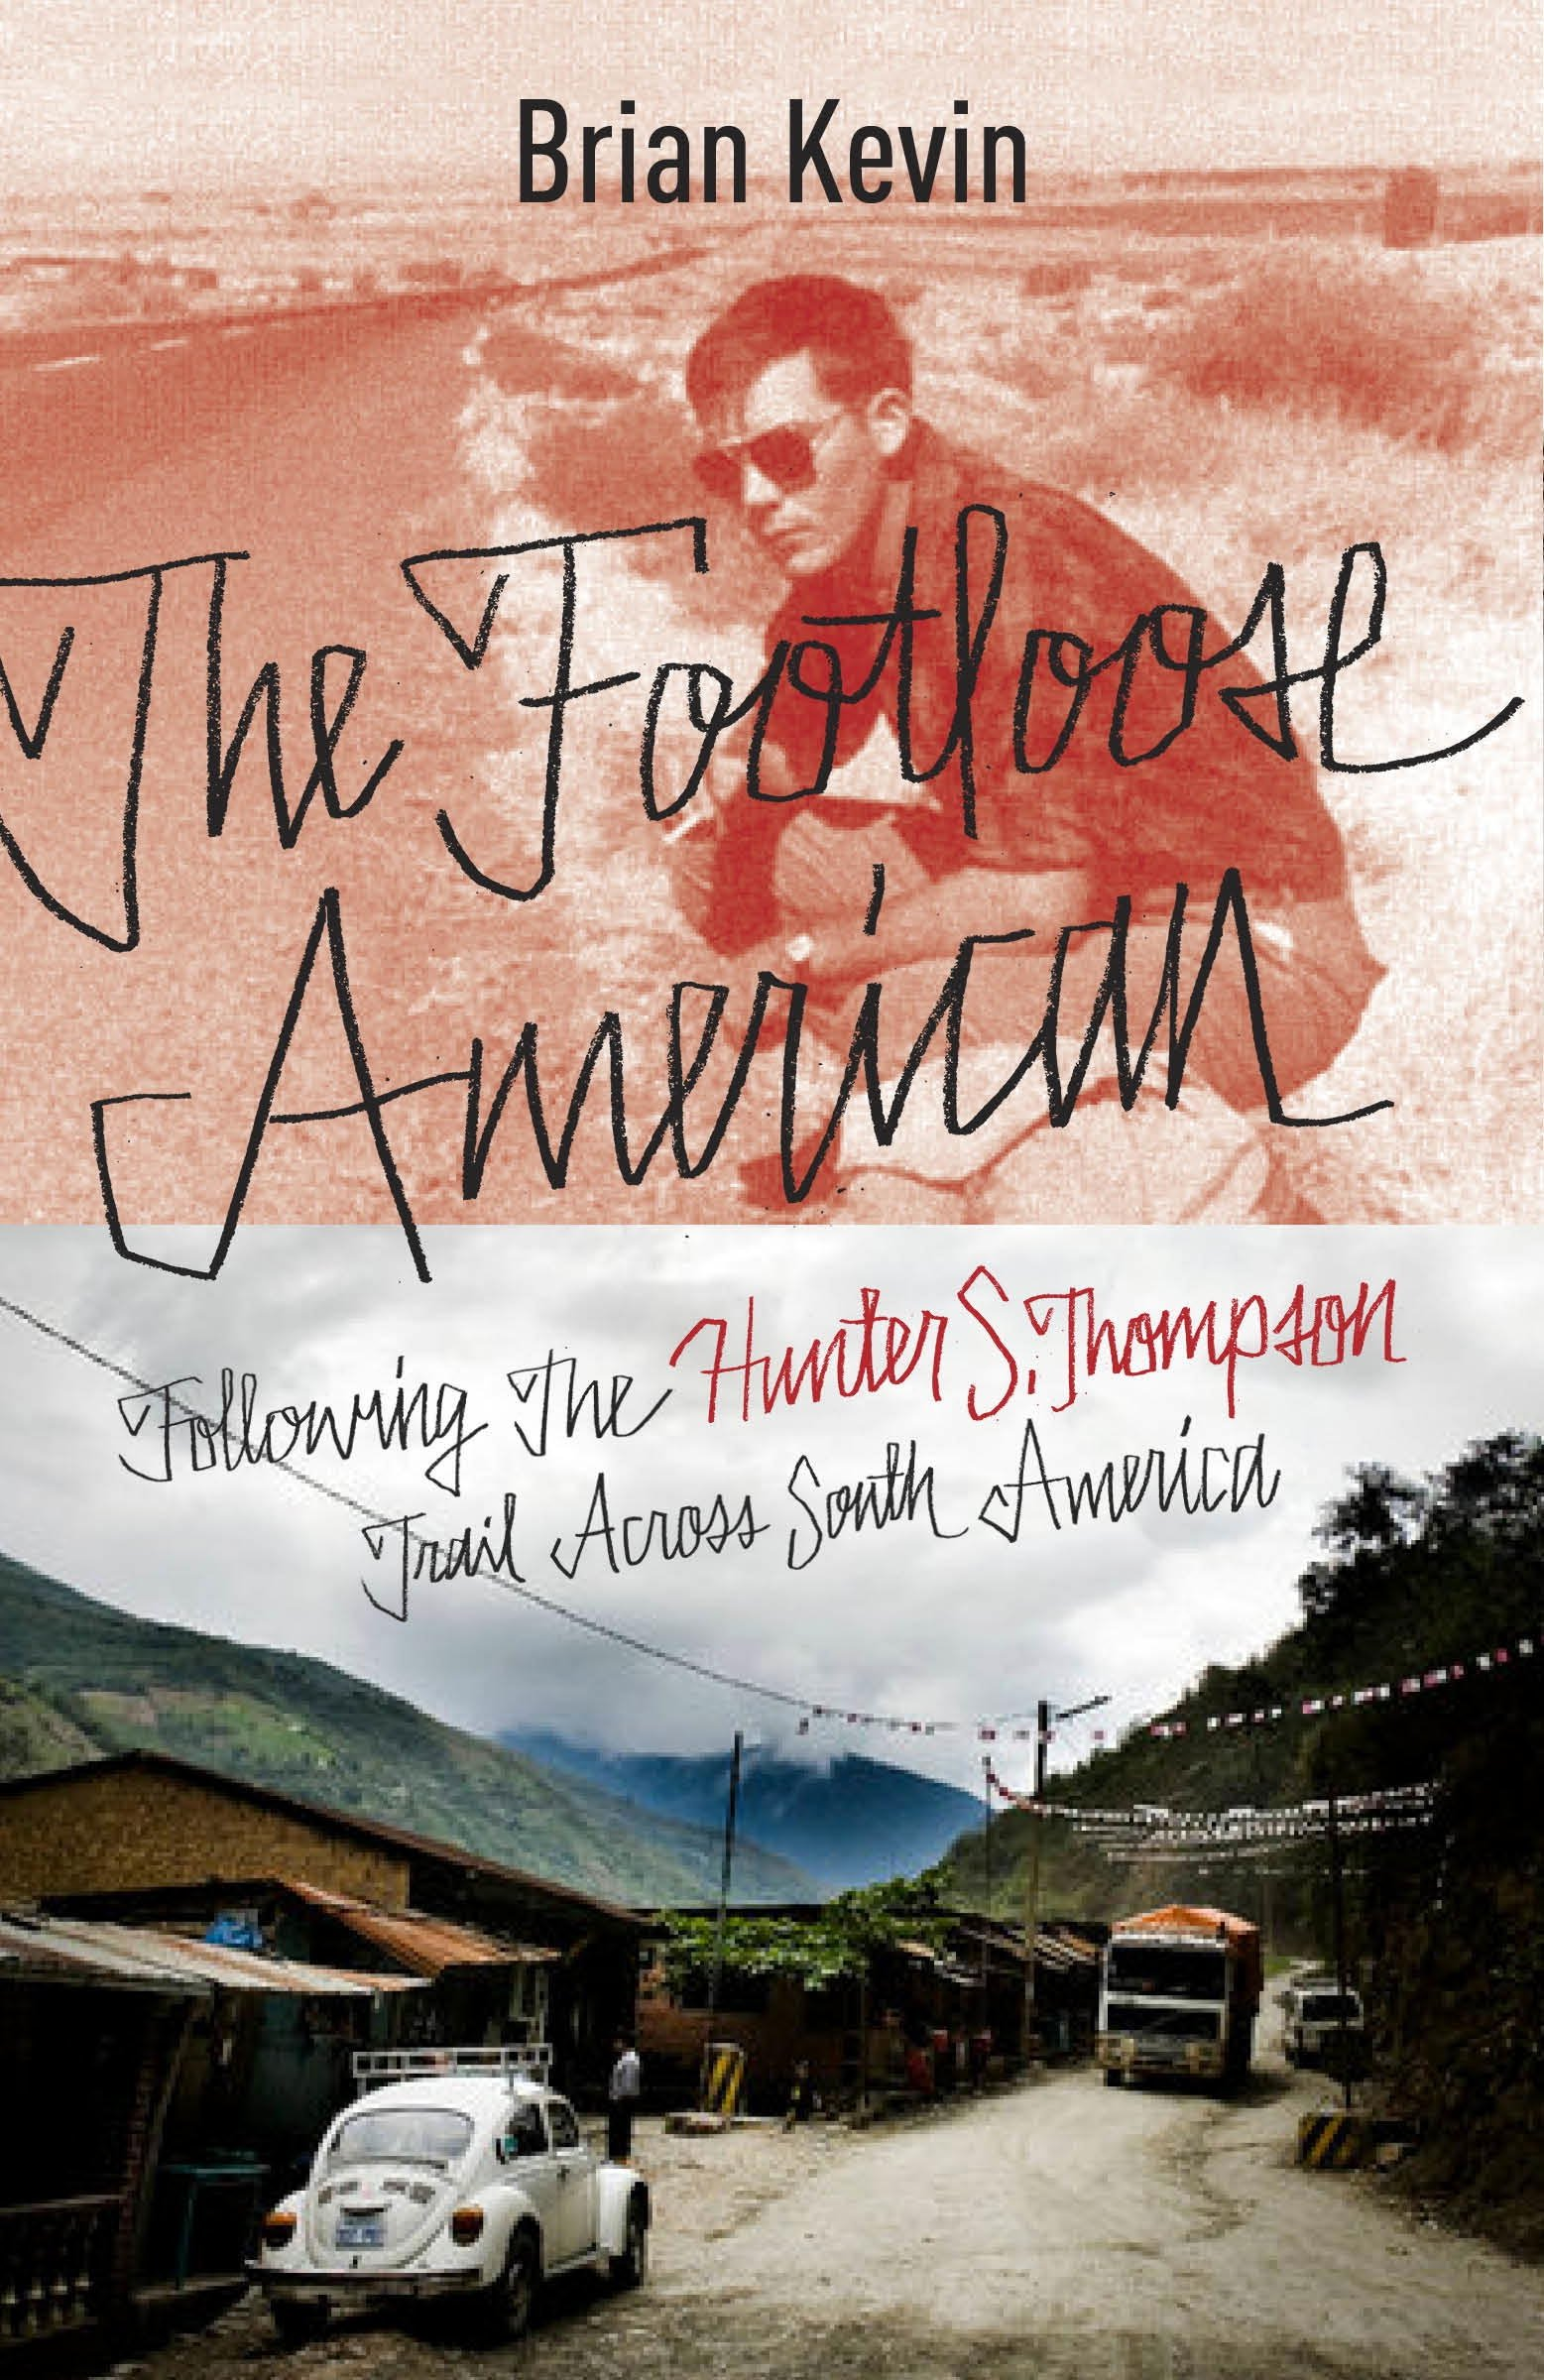 The Footloose American: Following the Hunter S. Thompson Trail Across South America